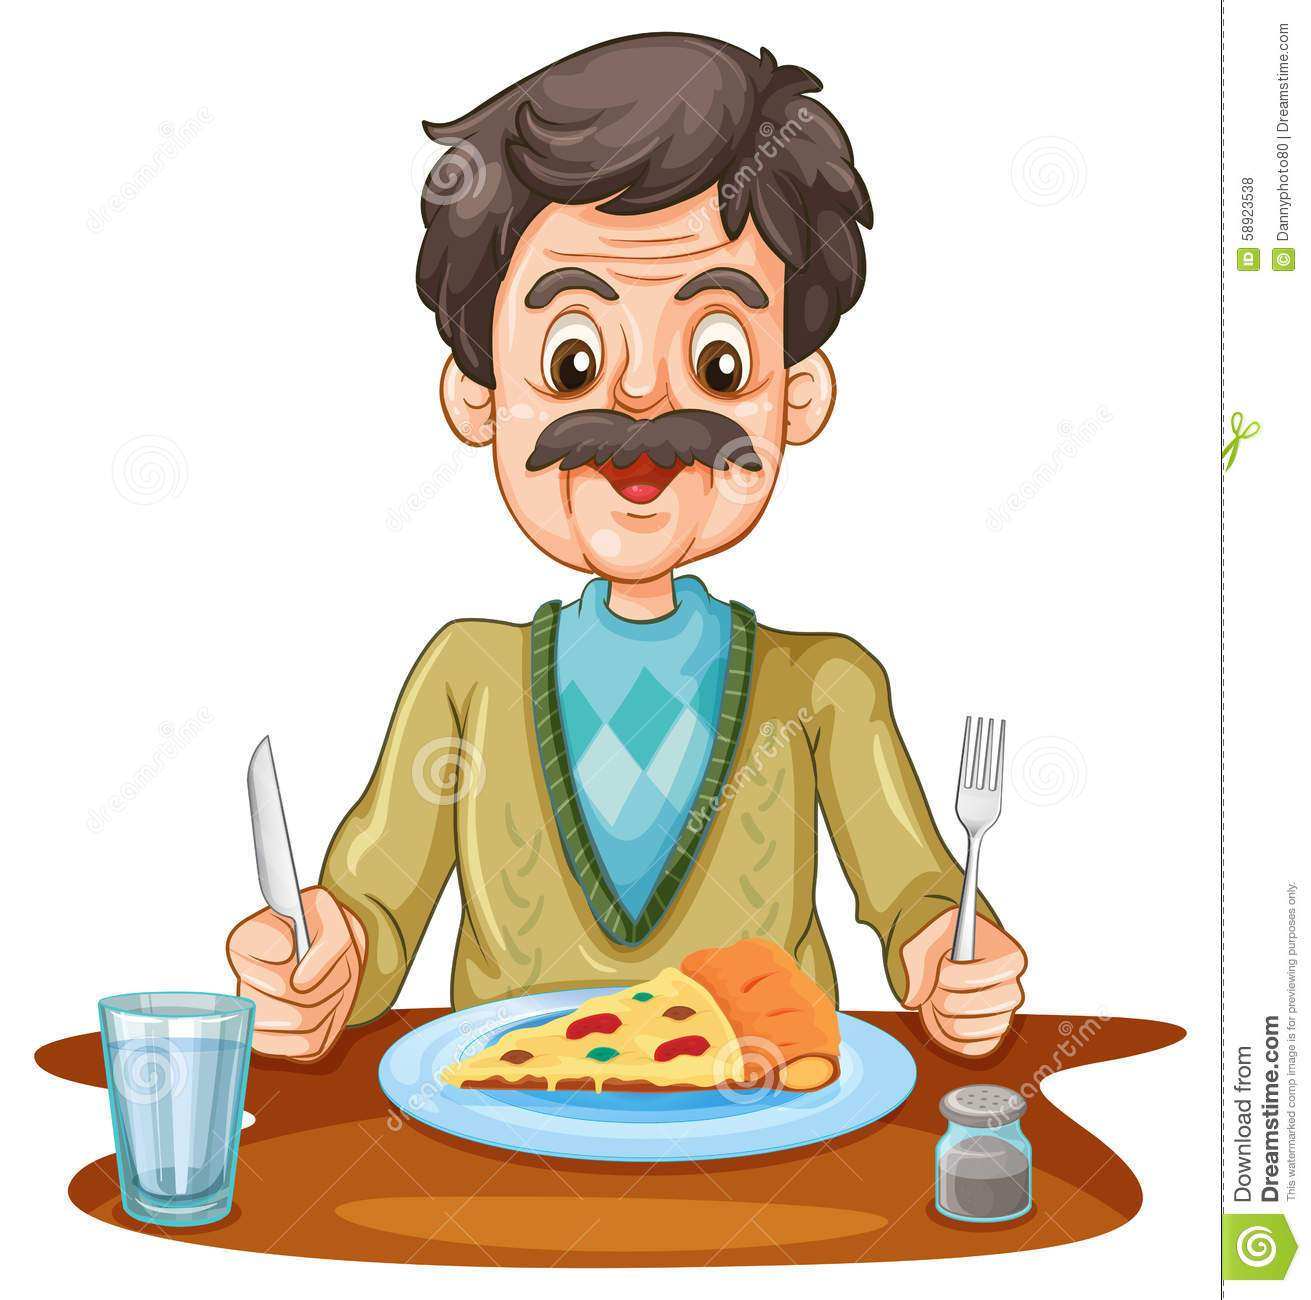 A person eating clipart 4 » Clipart Portal.